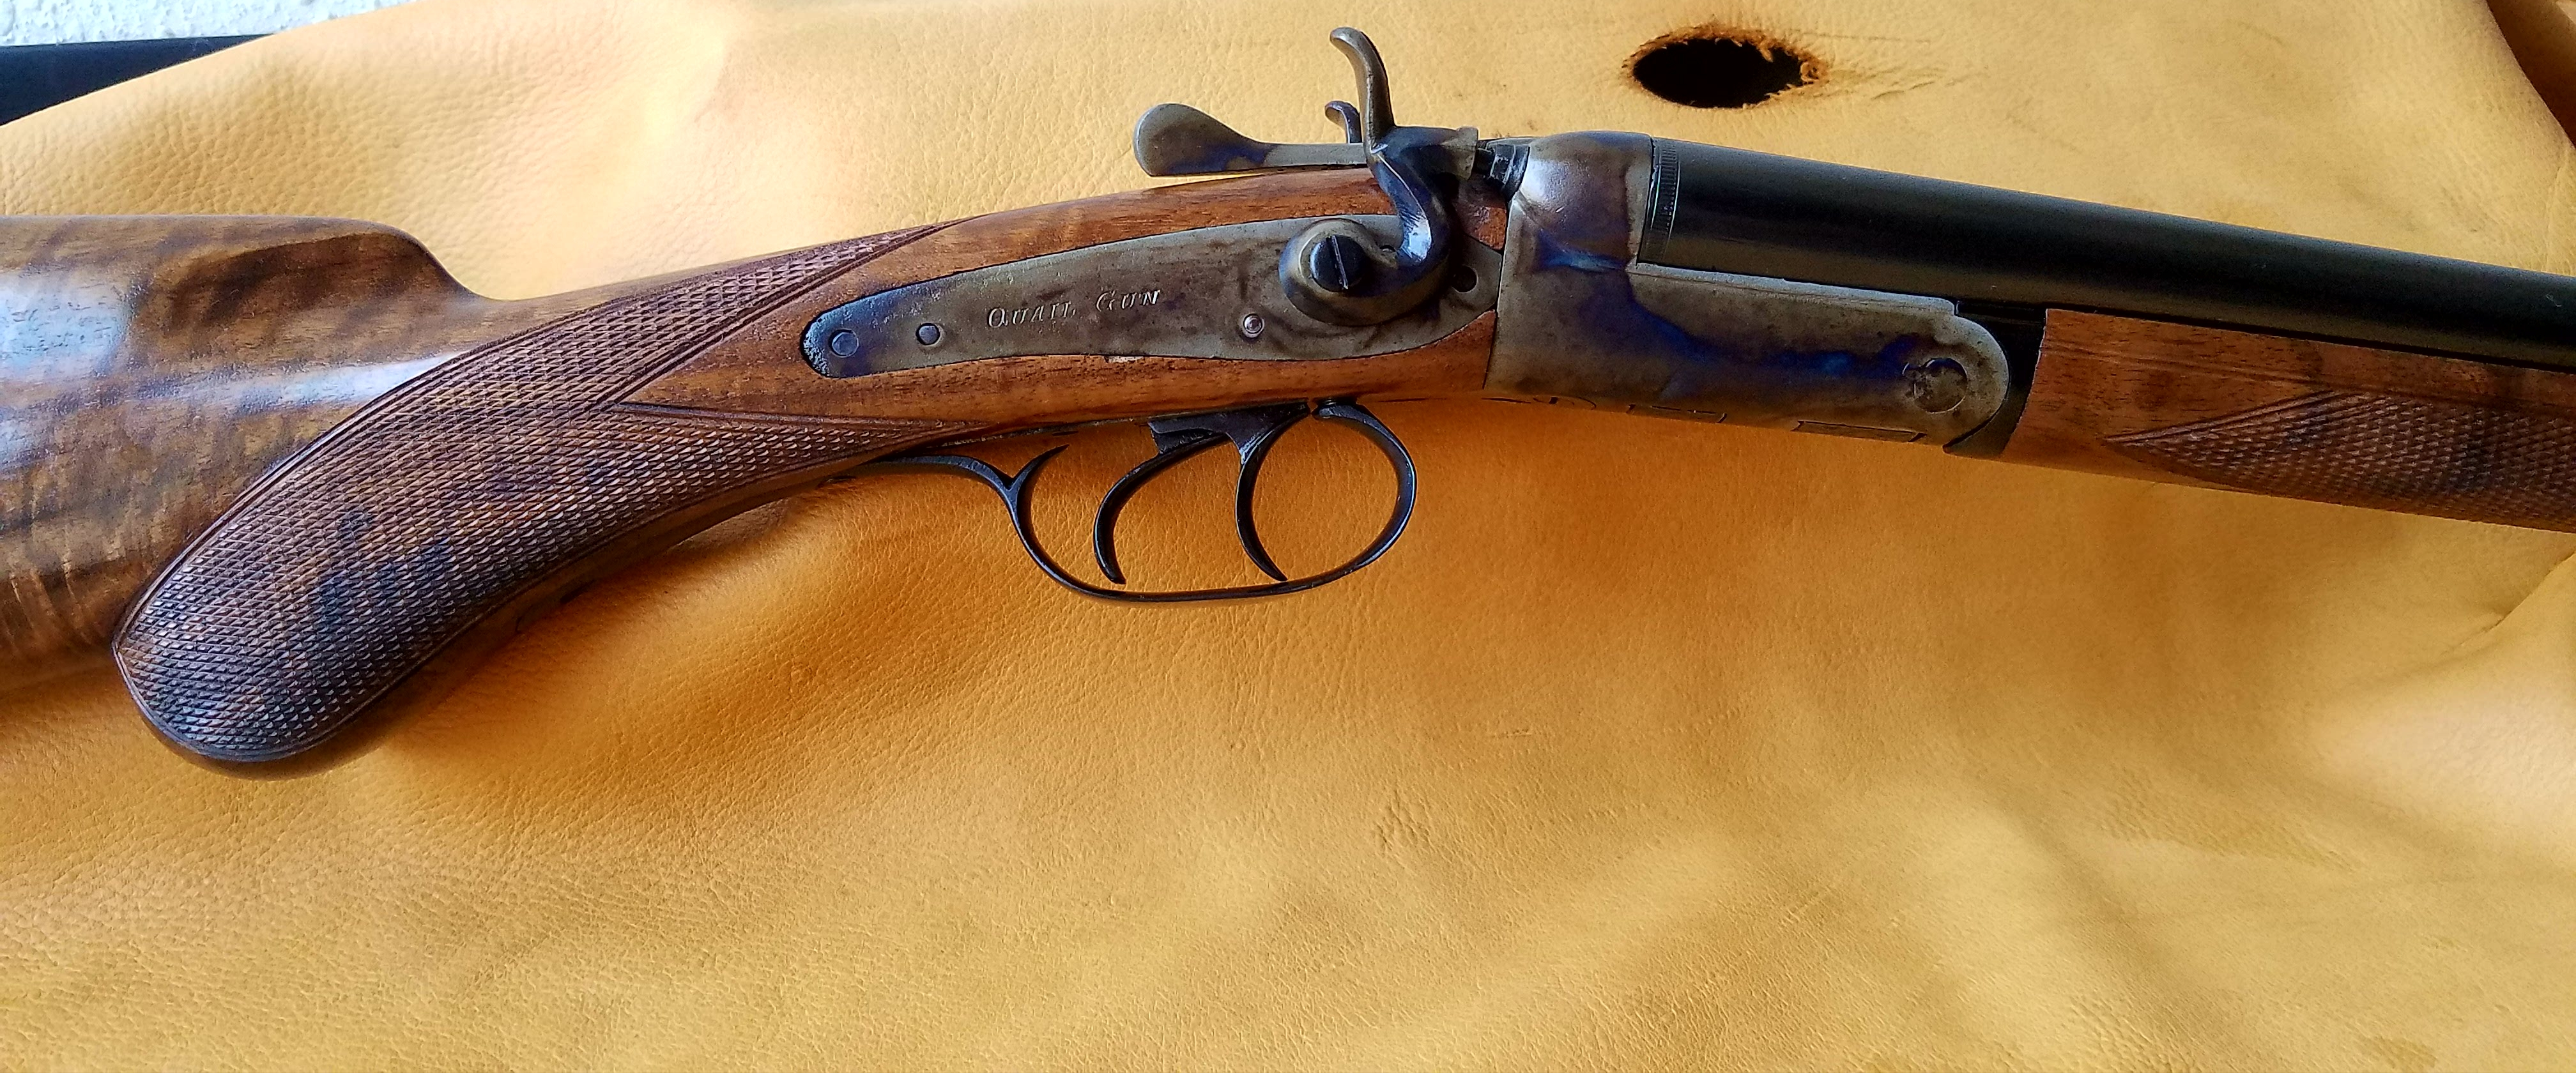 Belgium Quail Gun looking at right side of Color Case